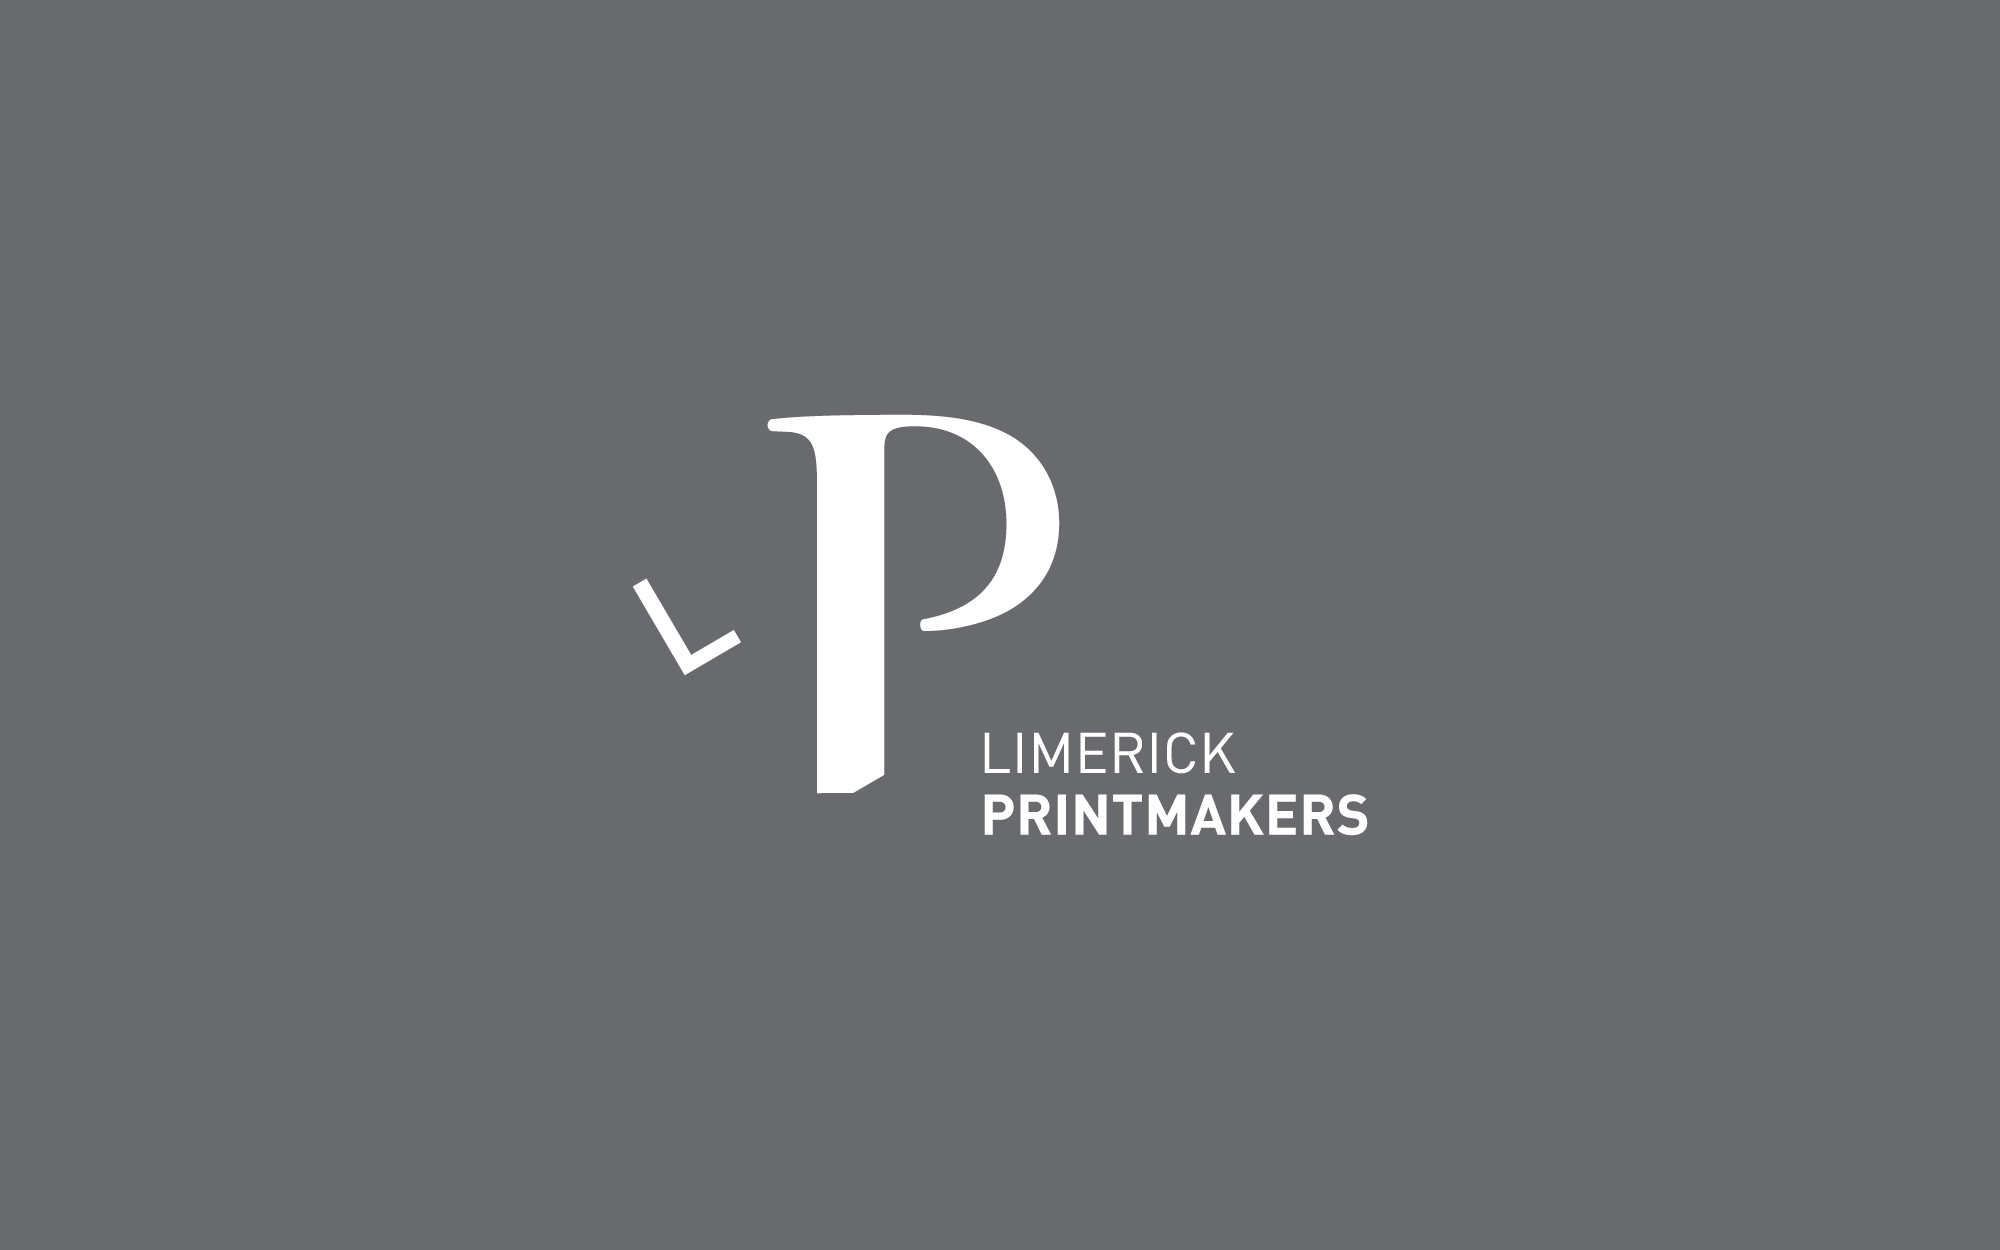 Cover image: Limerick Printmakers (2015)